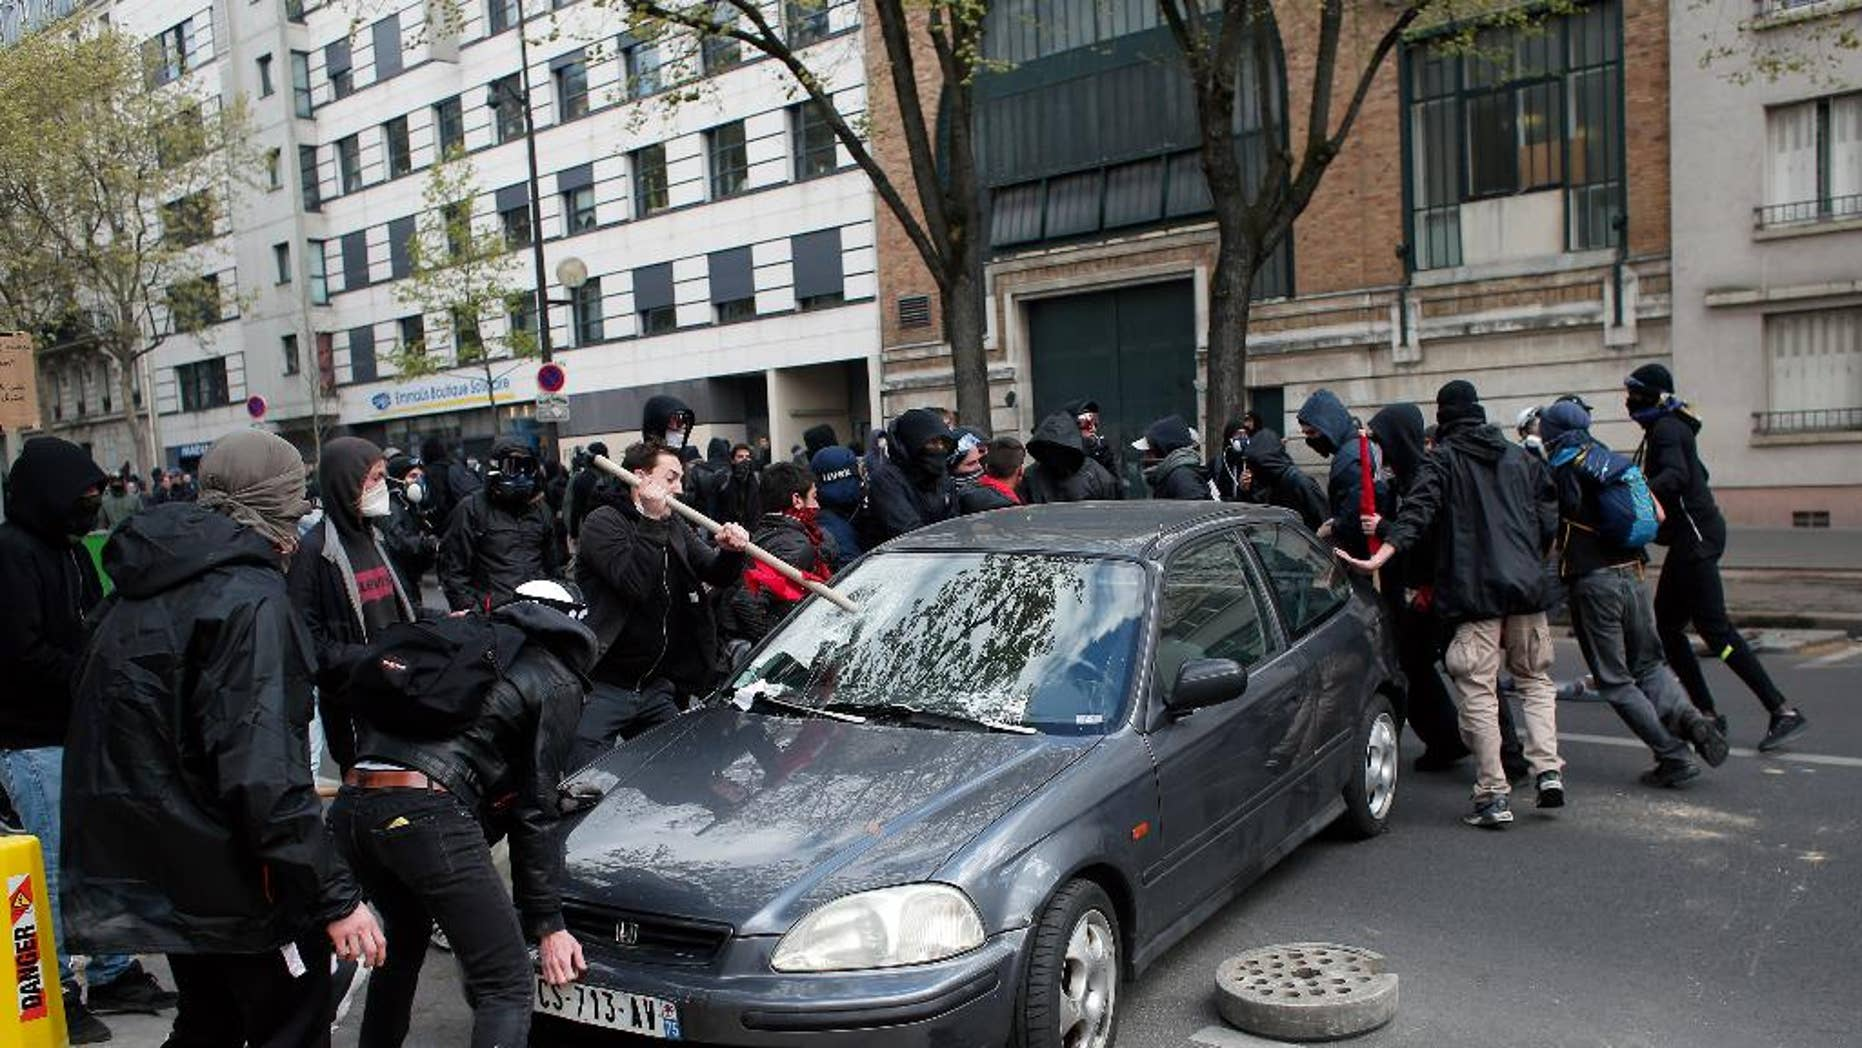 Protestors damage a car during clashes with riot police officers as part of a demonstration against the proposed changes to France's working week and layoff practices, in Paris, Thursday, April 28, 2016. Protesters across France are again marching to voice their anger at labor reforms being championed by the country's Socialist government. (AP Photo/Thibault Camus)